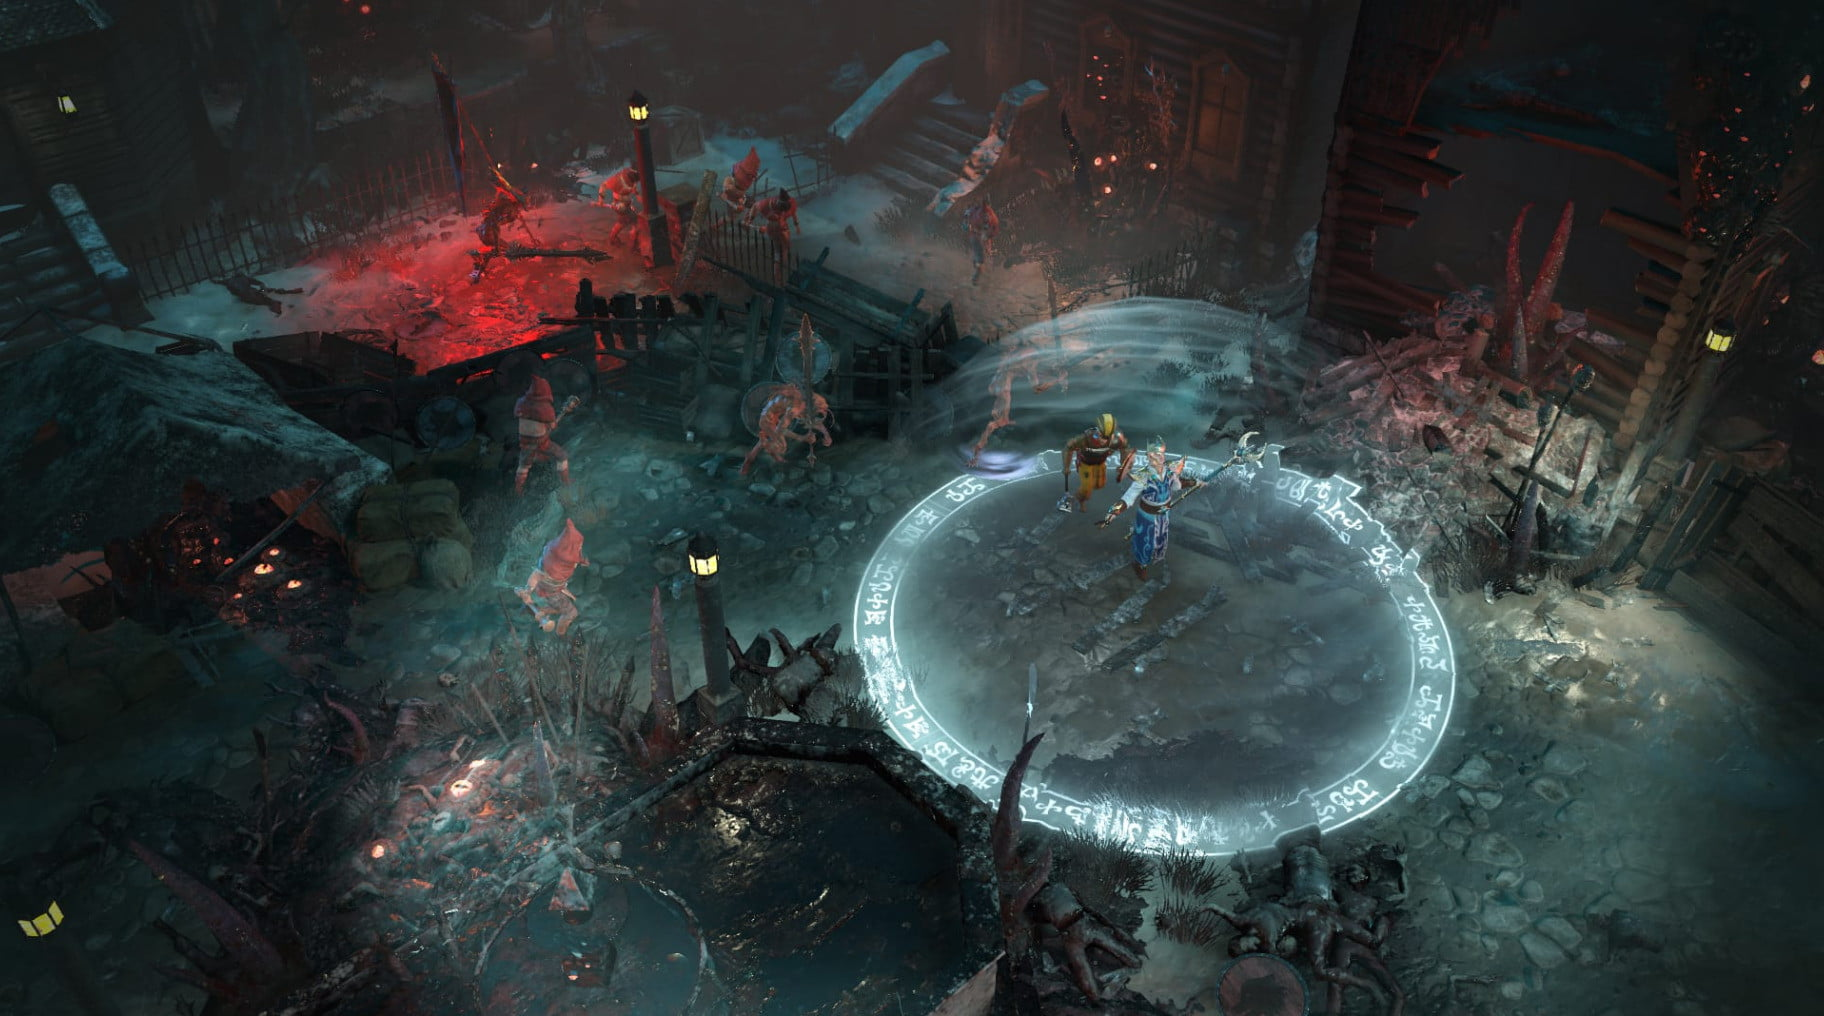 Warhammer Chaosbane doesn't wait to deliver good, gory fun